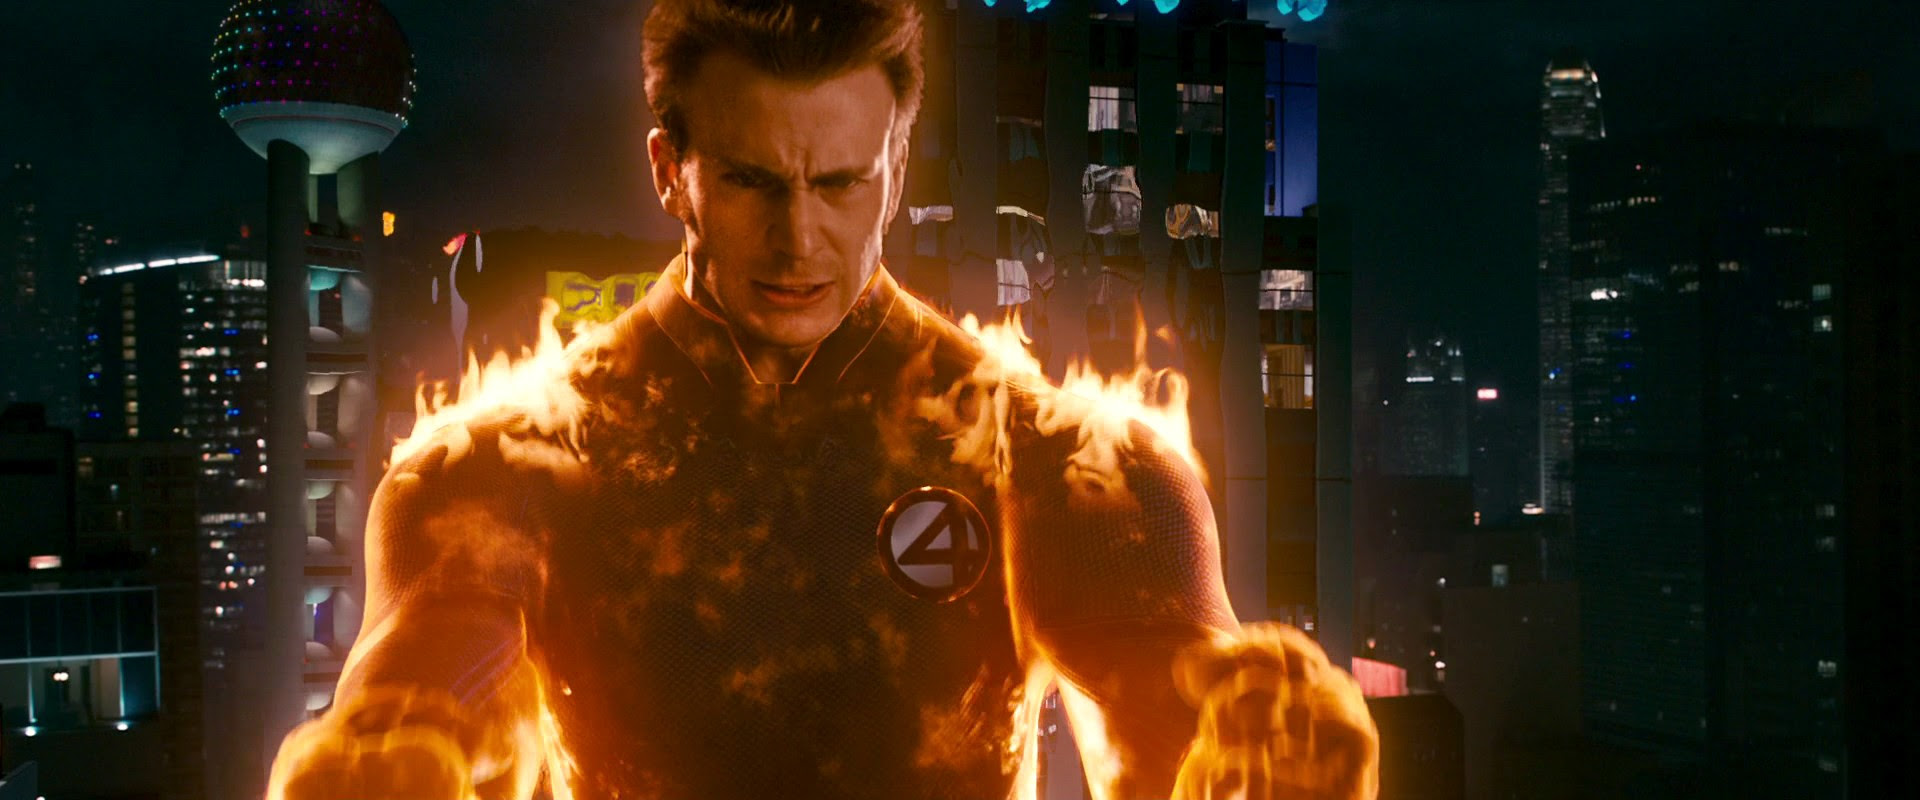 http://overmental.com/wp-content/uploads/2015/02/chris-evans-human-torch.jpg